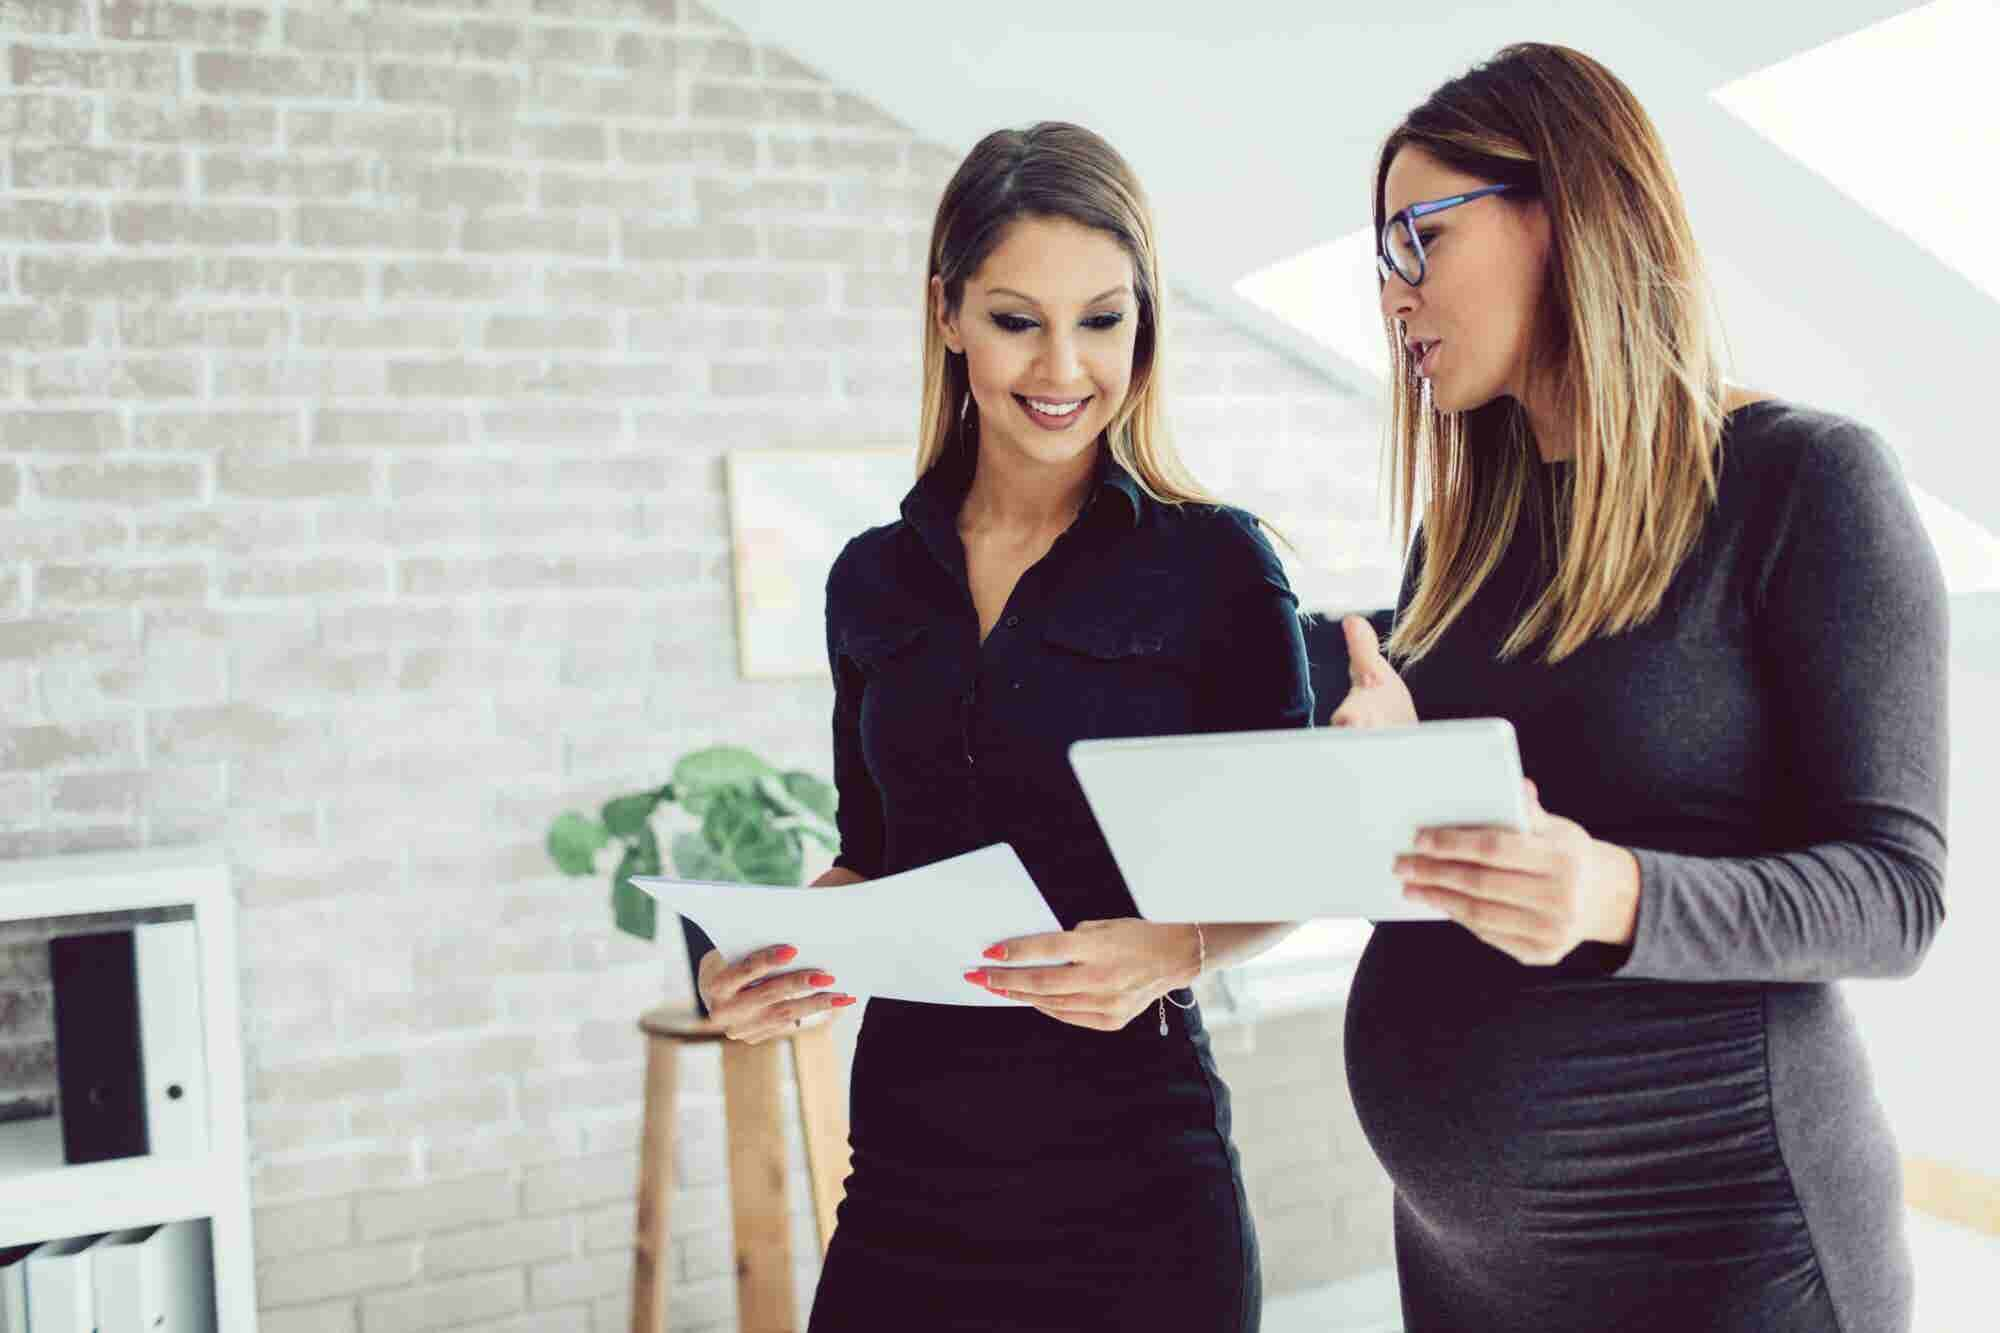 Fundraising While Pregnant: How to Raise $20 Million for Your Startup...